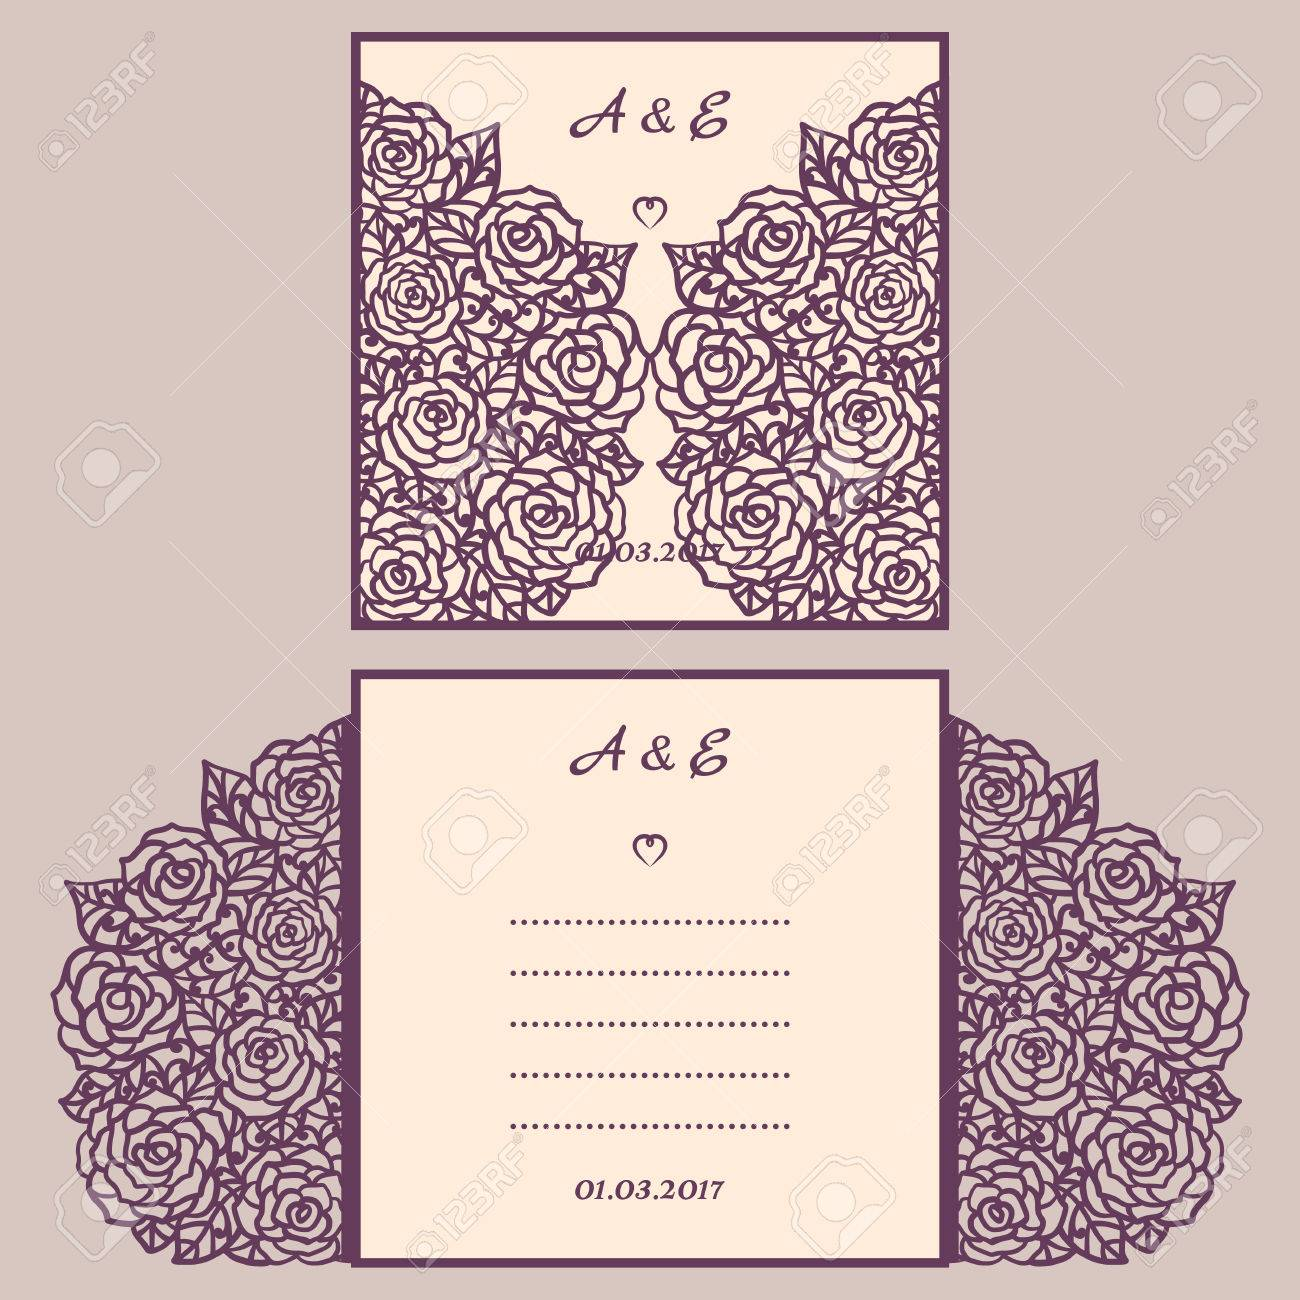 Wedding invitation or greeting card with abstract ornament wedding invitation or greeting card with abstract ornament envelope template for laser cutting paper stopboris Images